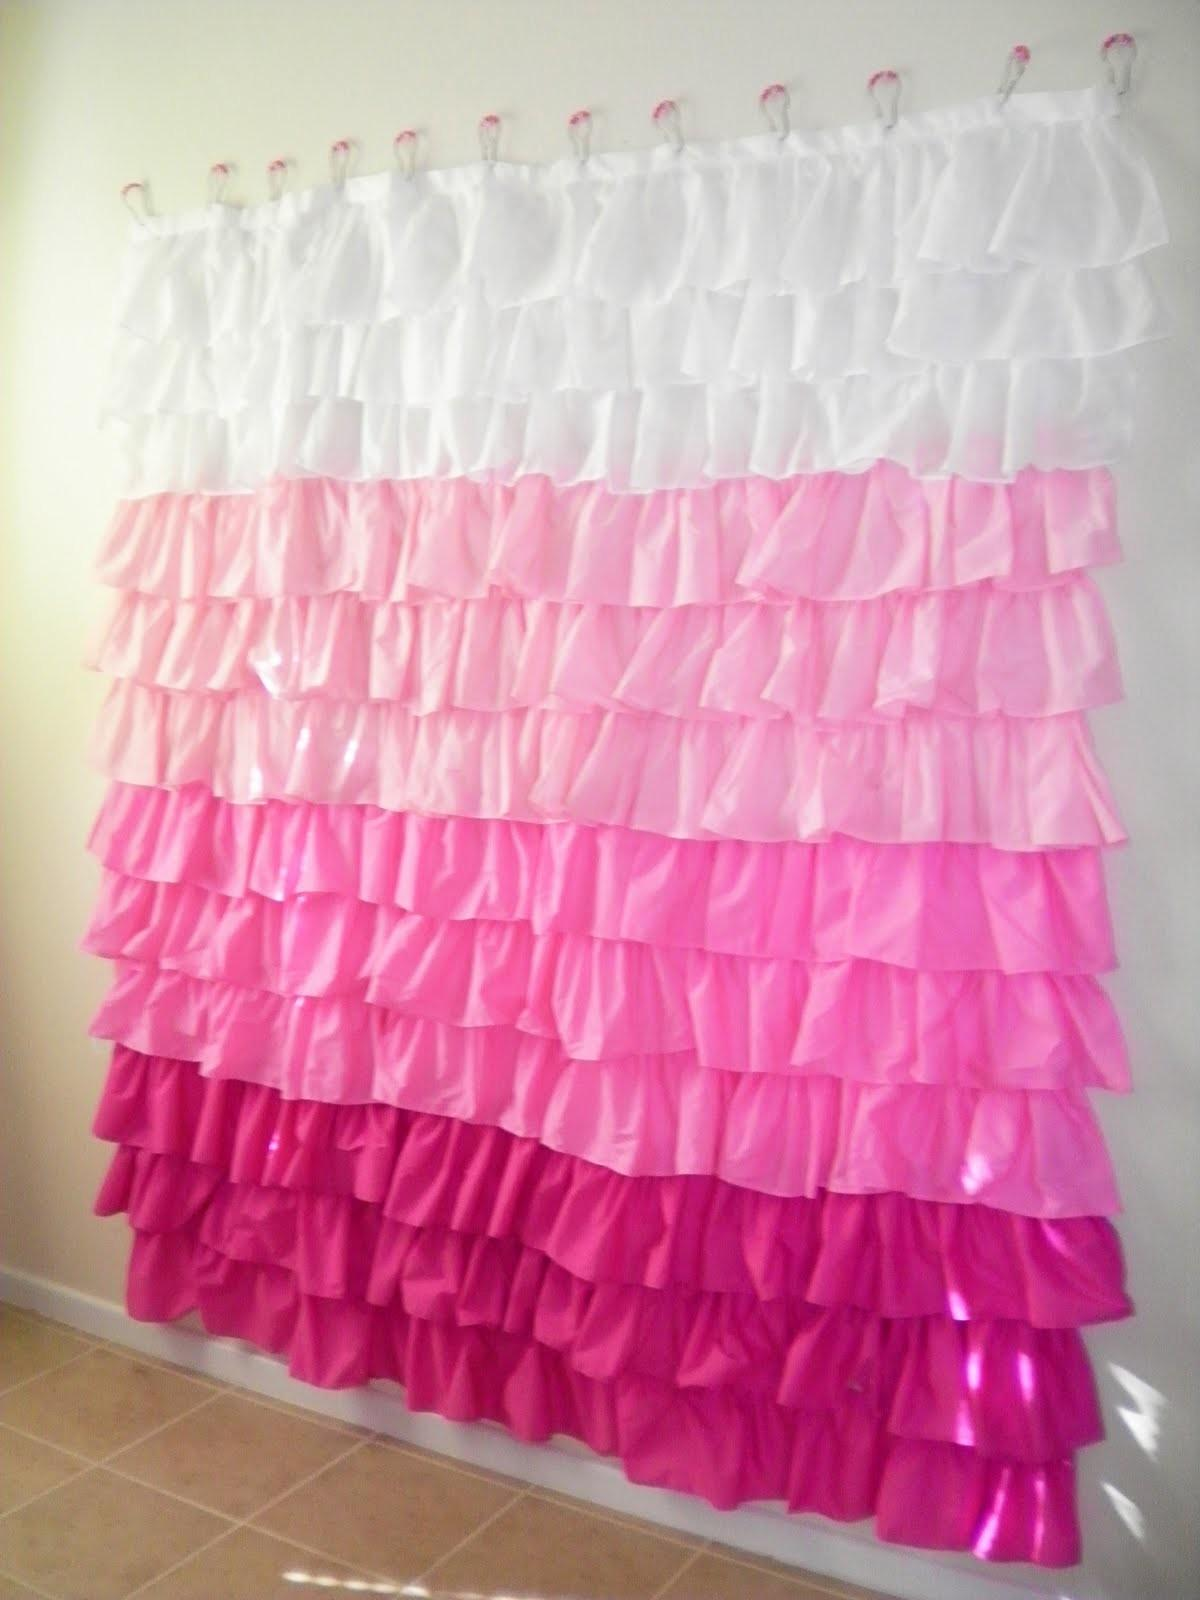 Justcallmeblessed Oodles Ruffles Shower Curtain